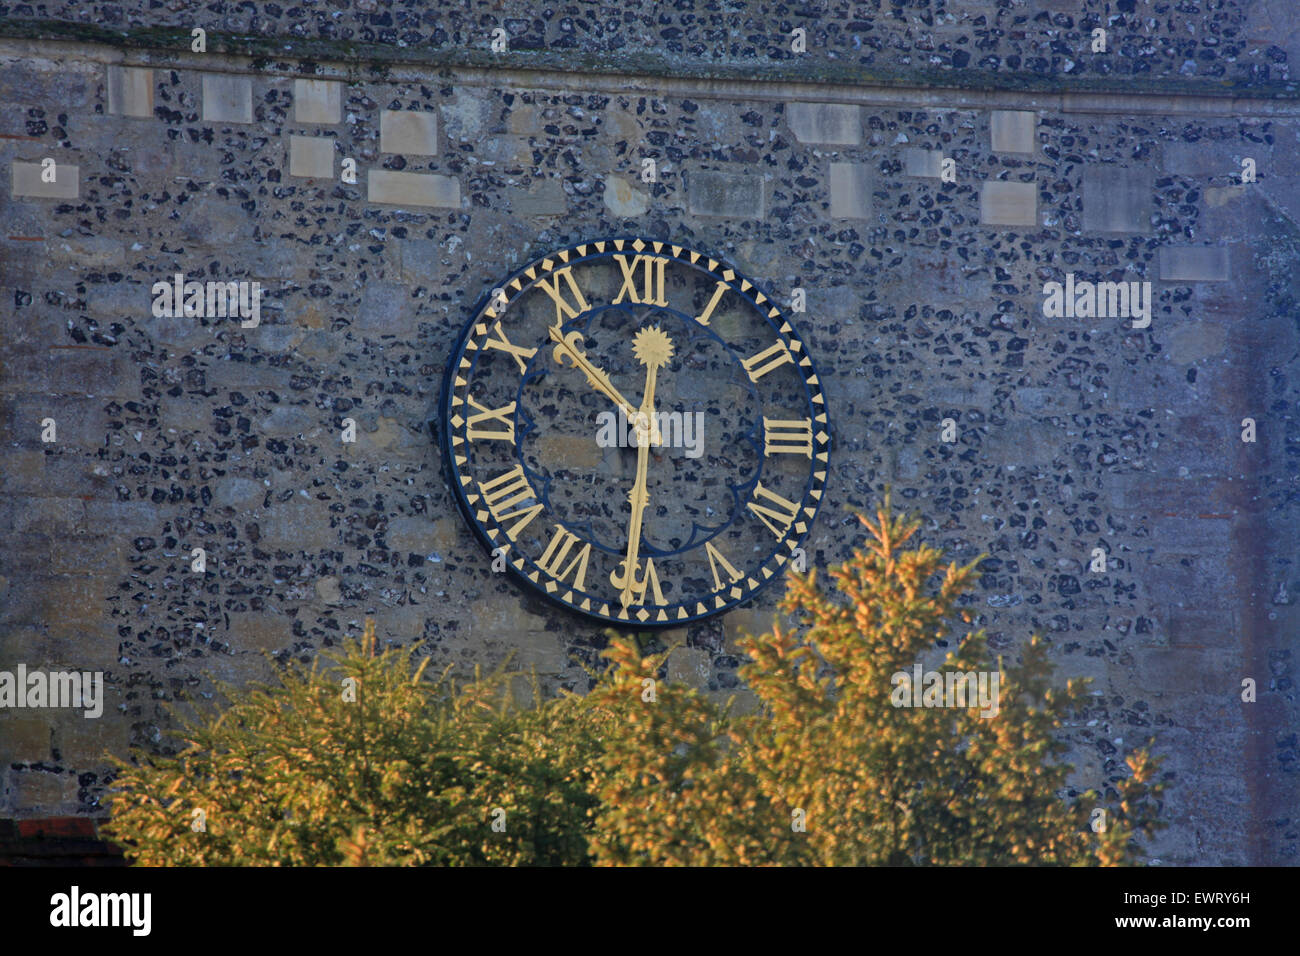 A church wall clock with Gold numbers and hands on a flint and block background. - Stock Image